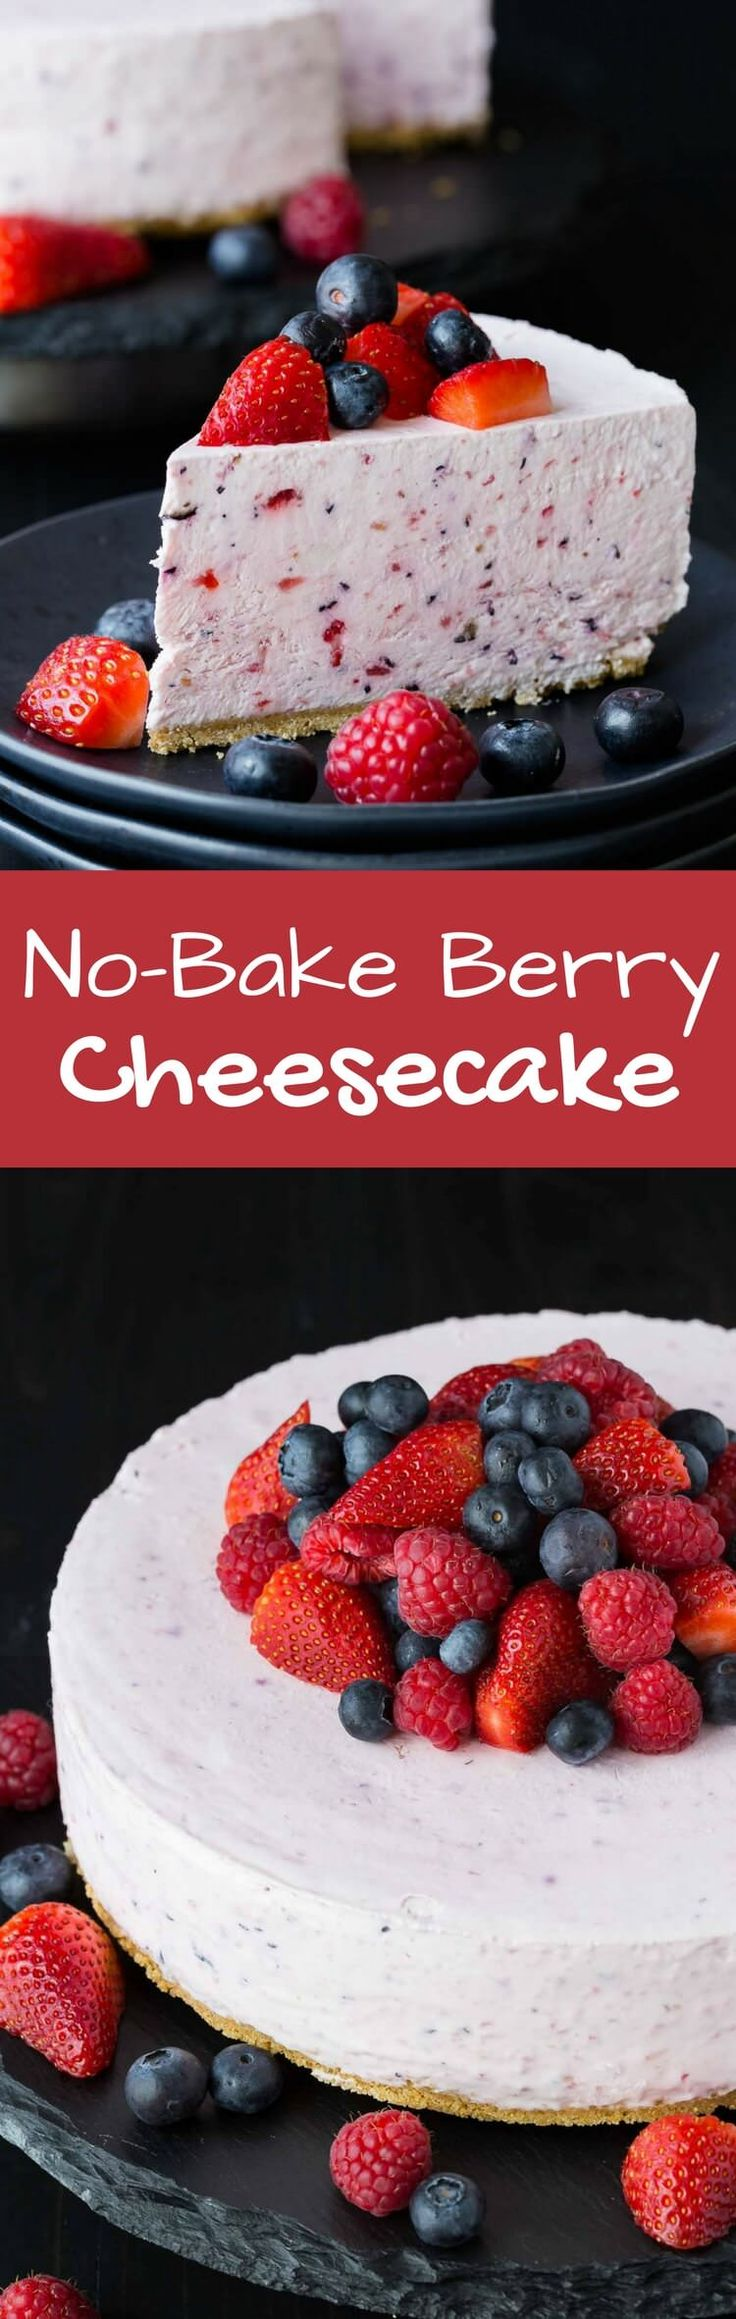 This no bake berry cheesecake is one of those that you will want to make for every summer party. It's full of strawberries and blueberries. #cheesecake #nobake #summer